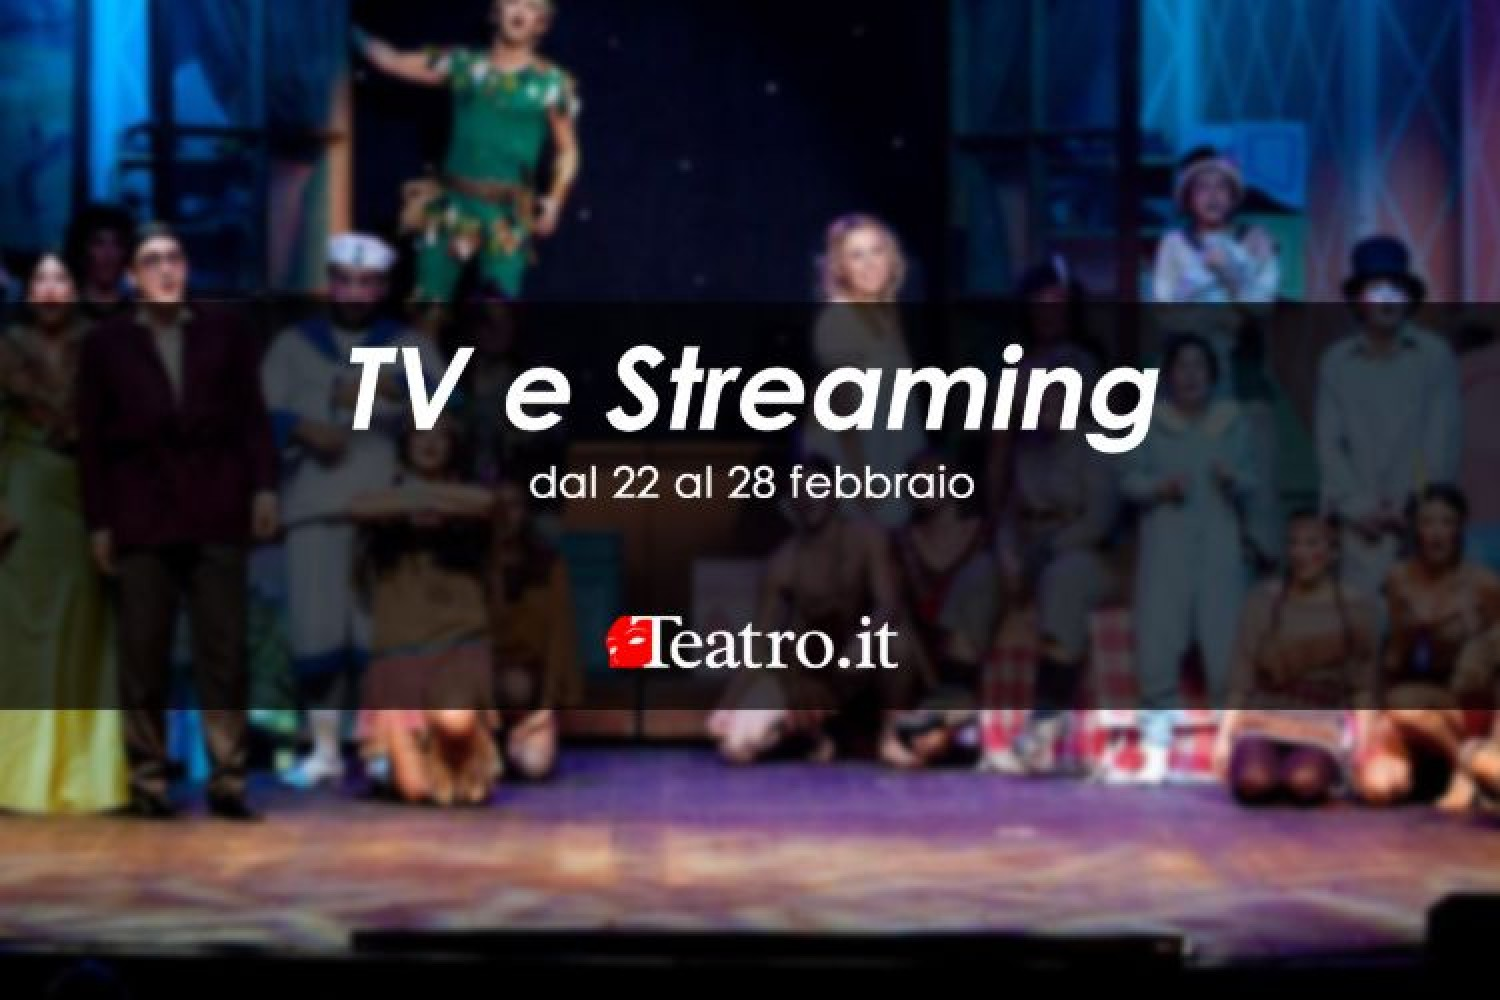 TV e Streaming